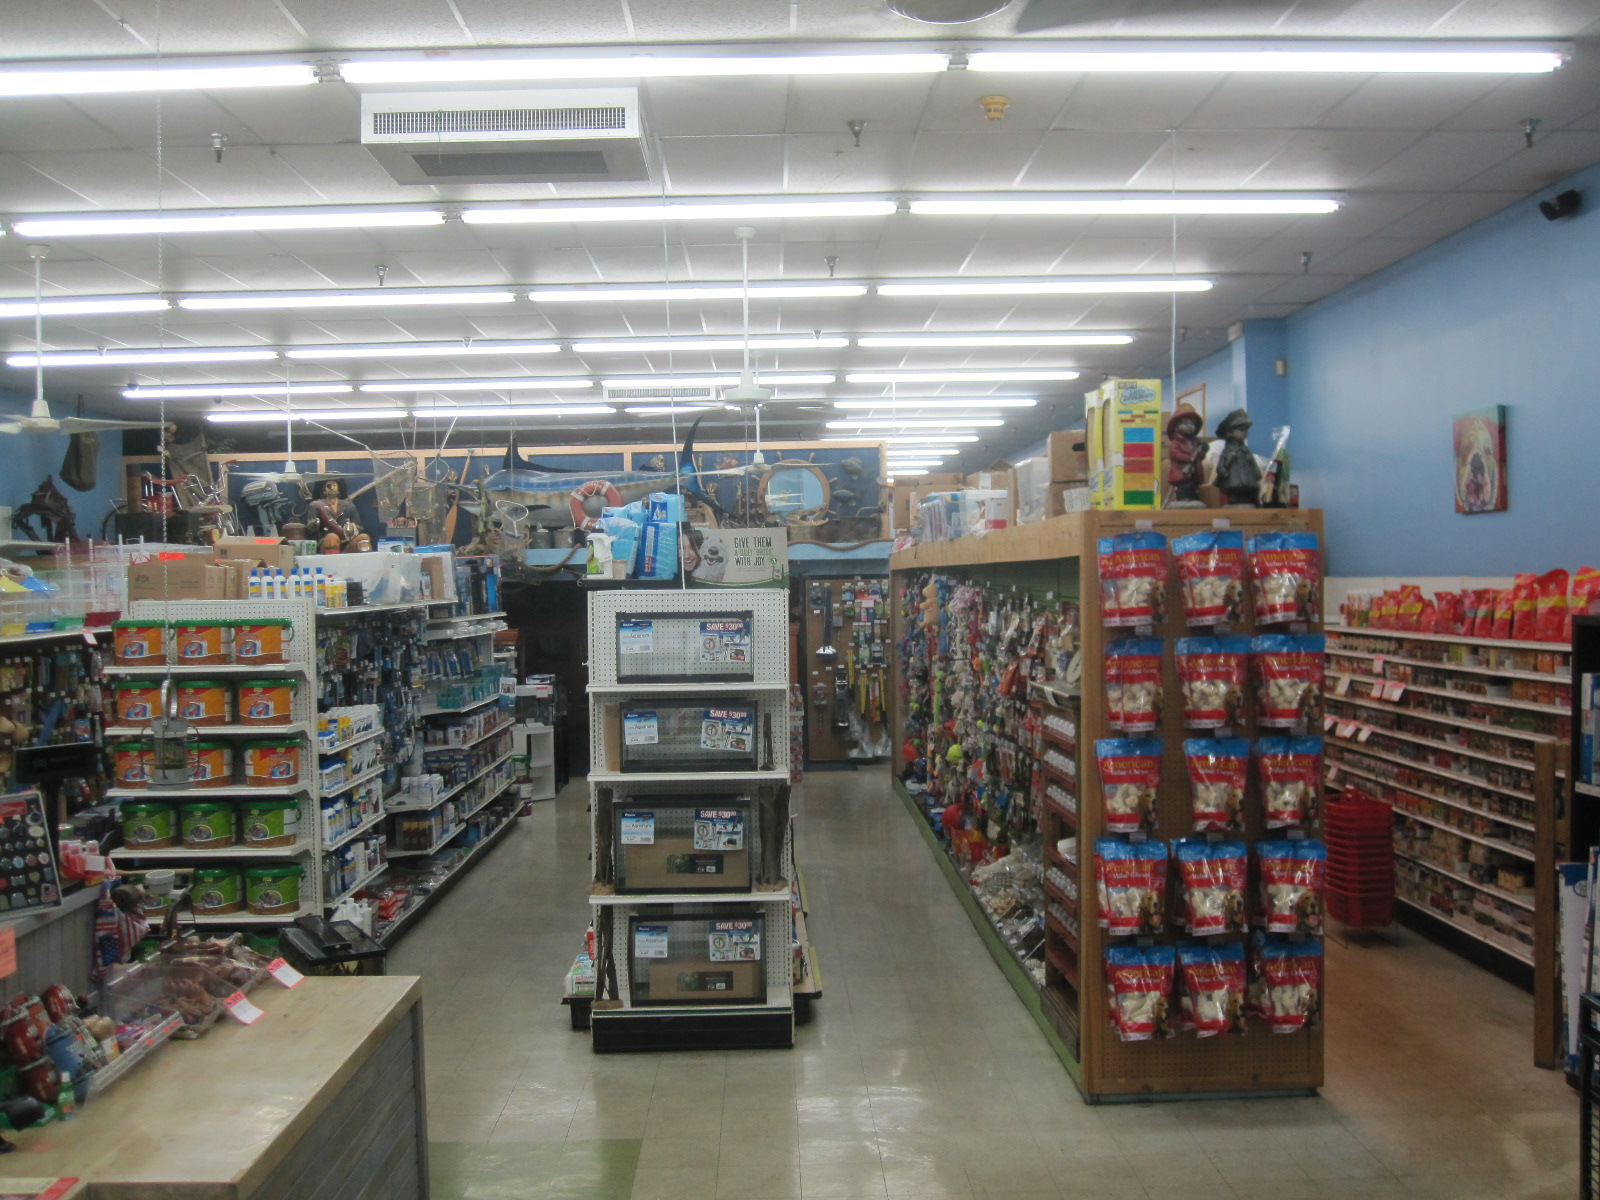 Aisles of supplies for all your pets